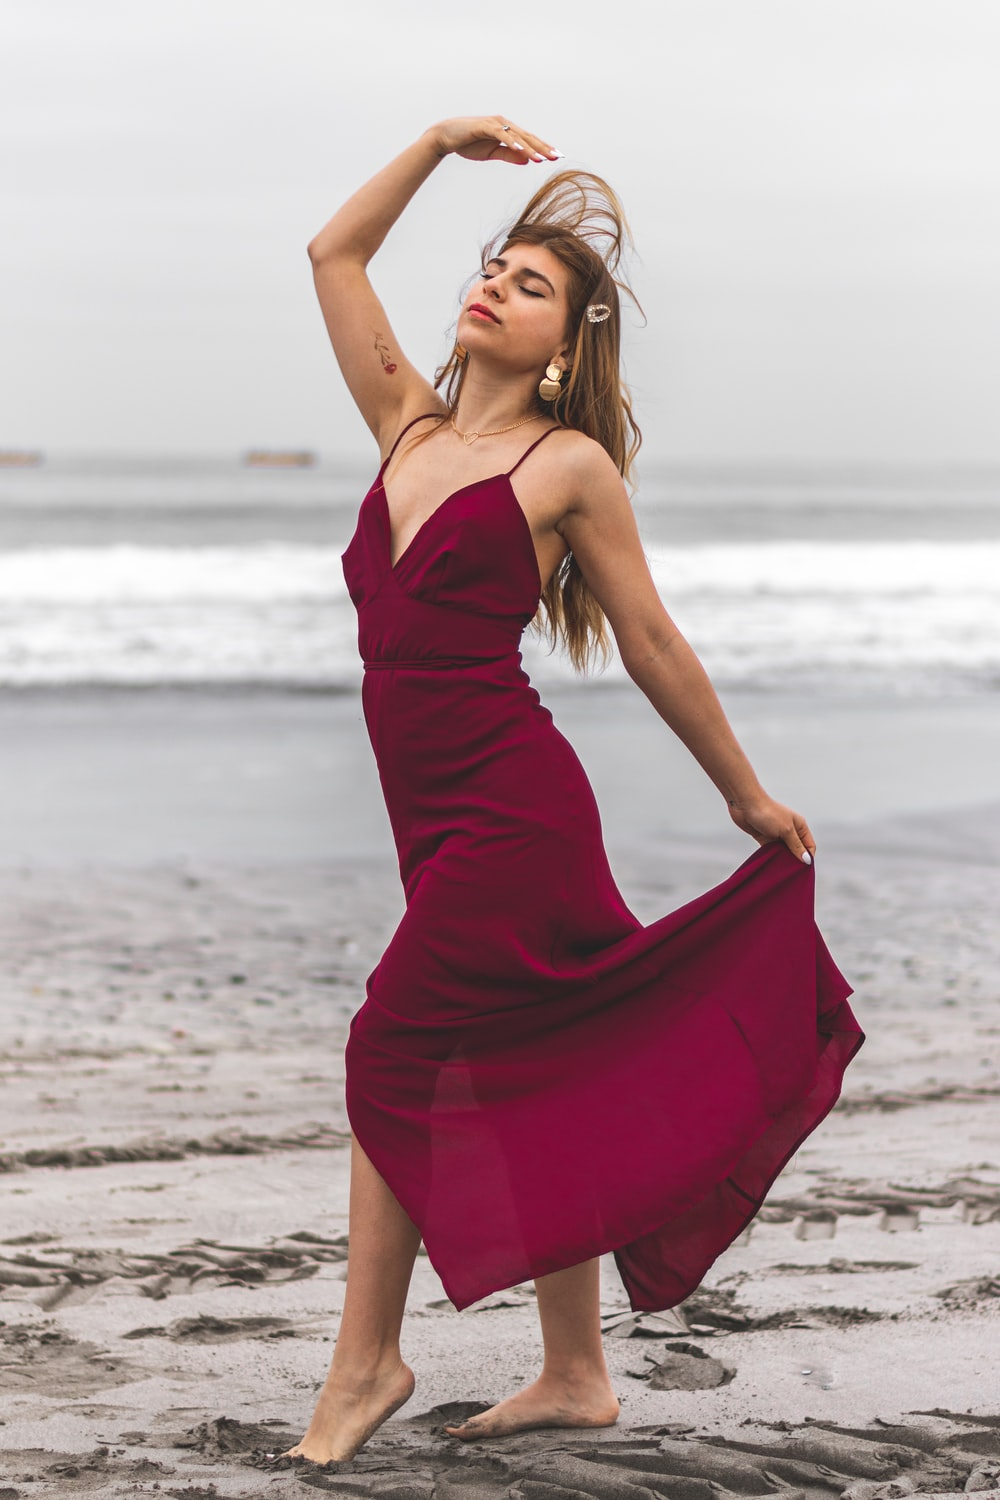 woman in red spaghetti strap dress standing on beach during daytime